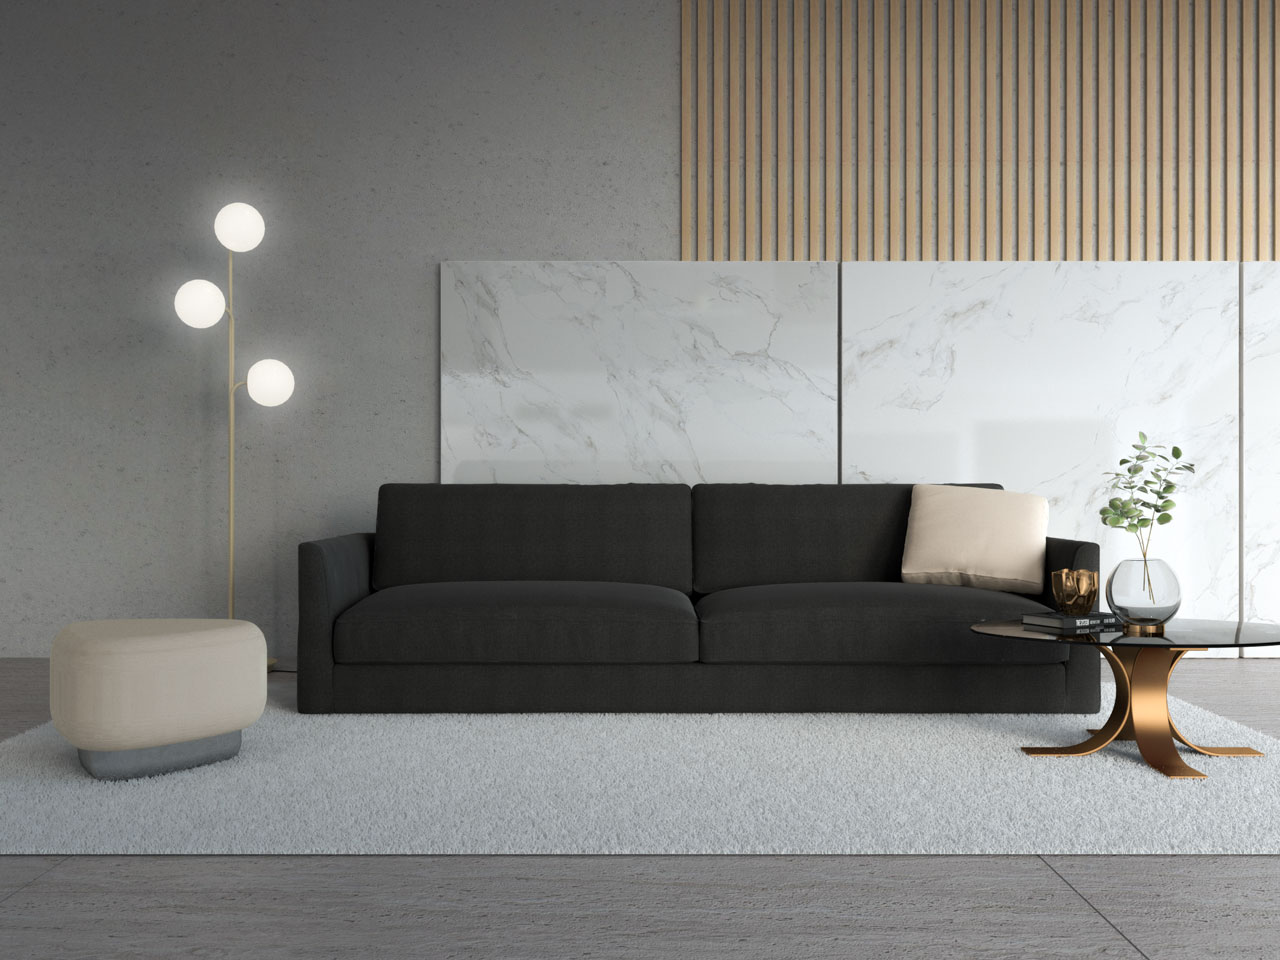 Beige ottoman with black couch